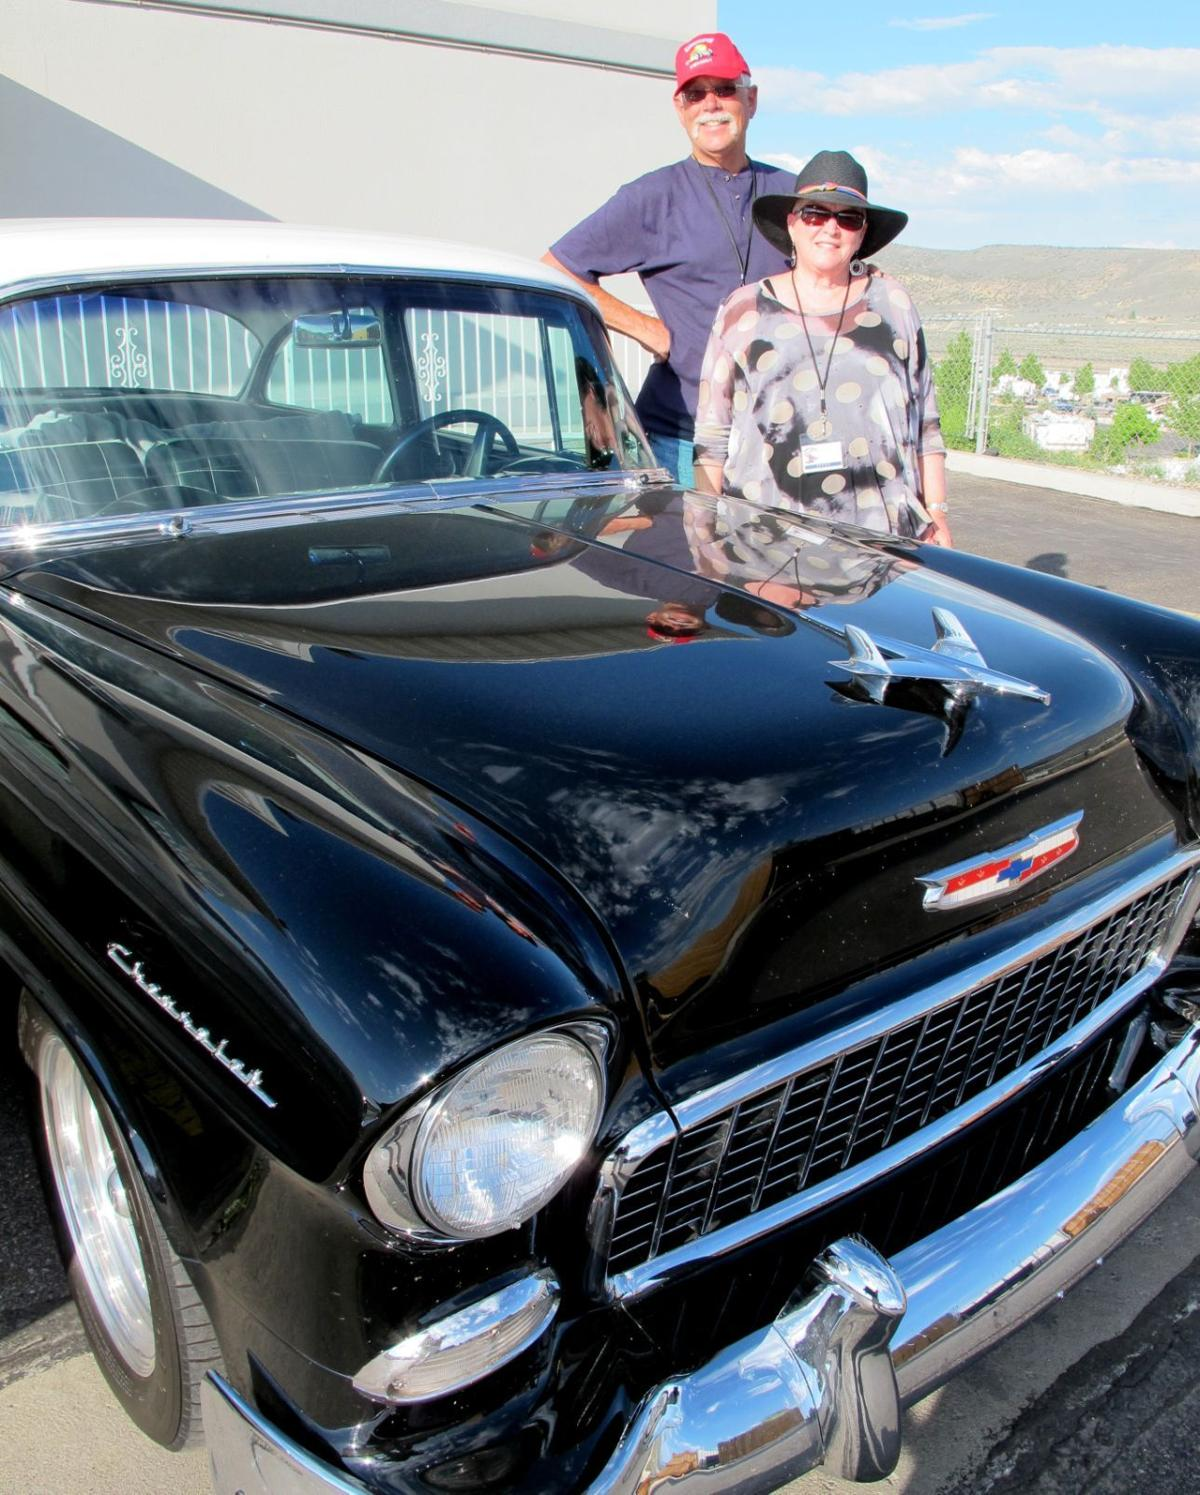 Traveling Classic Car Group Passes Through Town